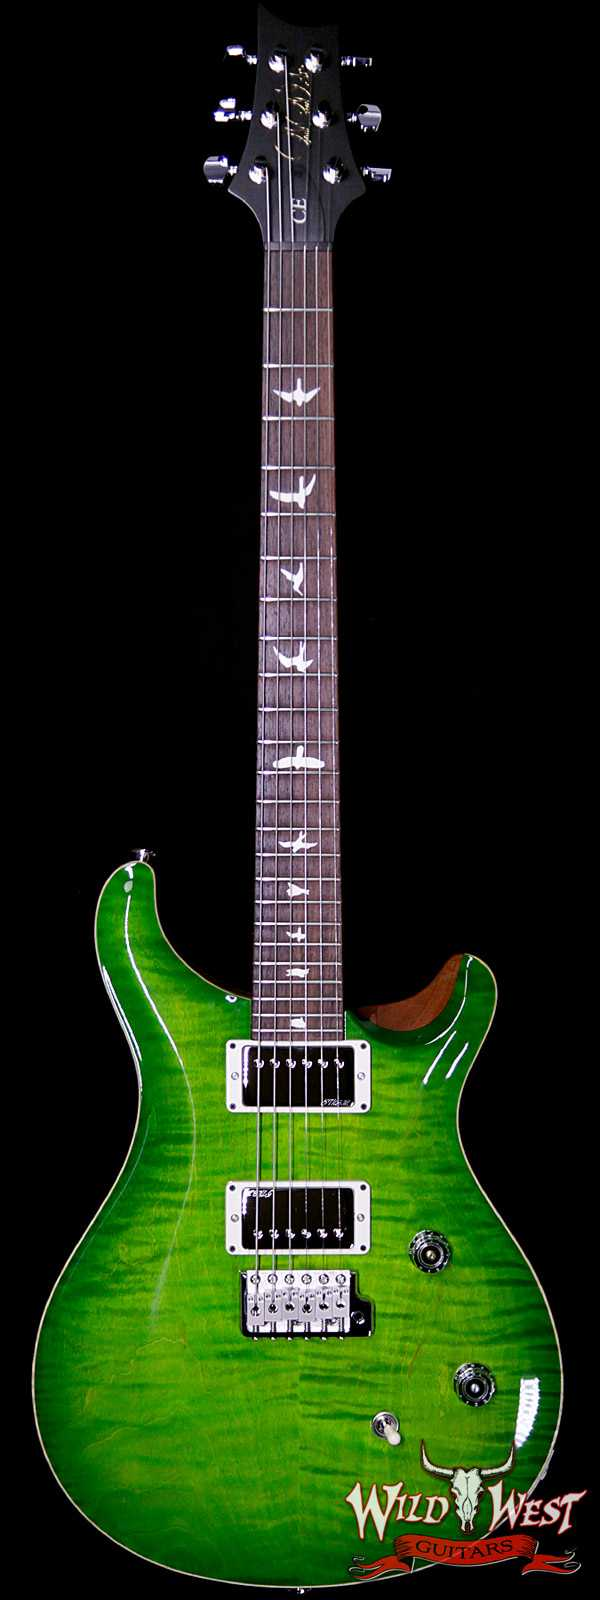 Paul Reed Smith PRS Wild West Guitars Special Run CE 24 Flame Top Painted Neck 57/08 Pickups Eriza Verde 285217